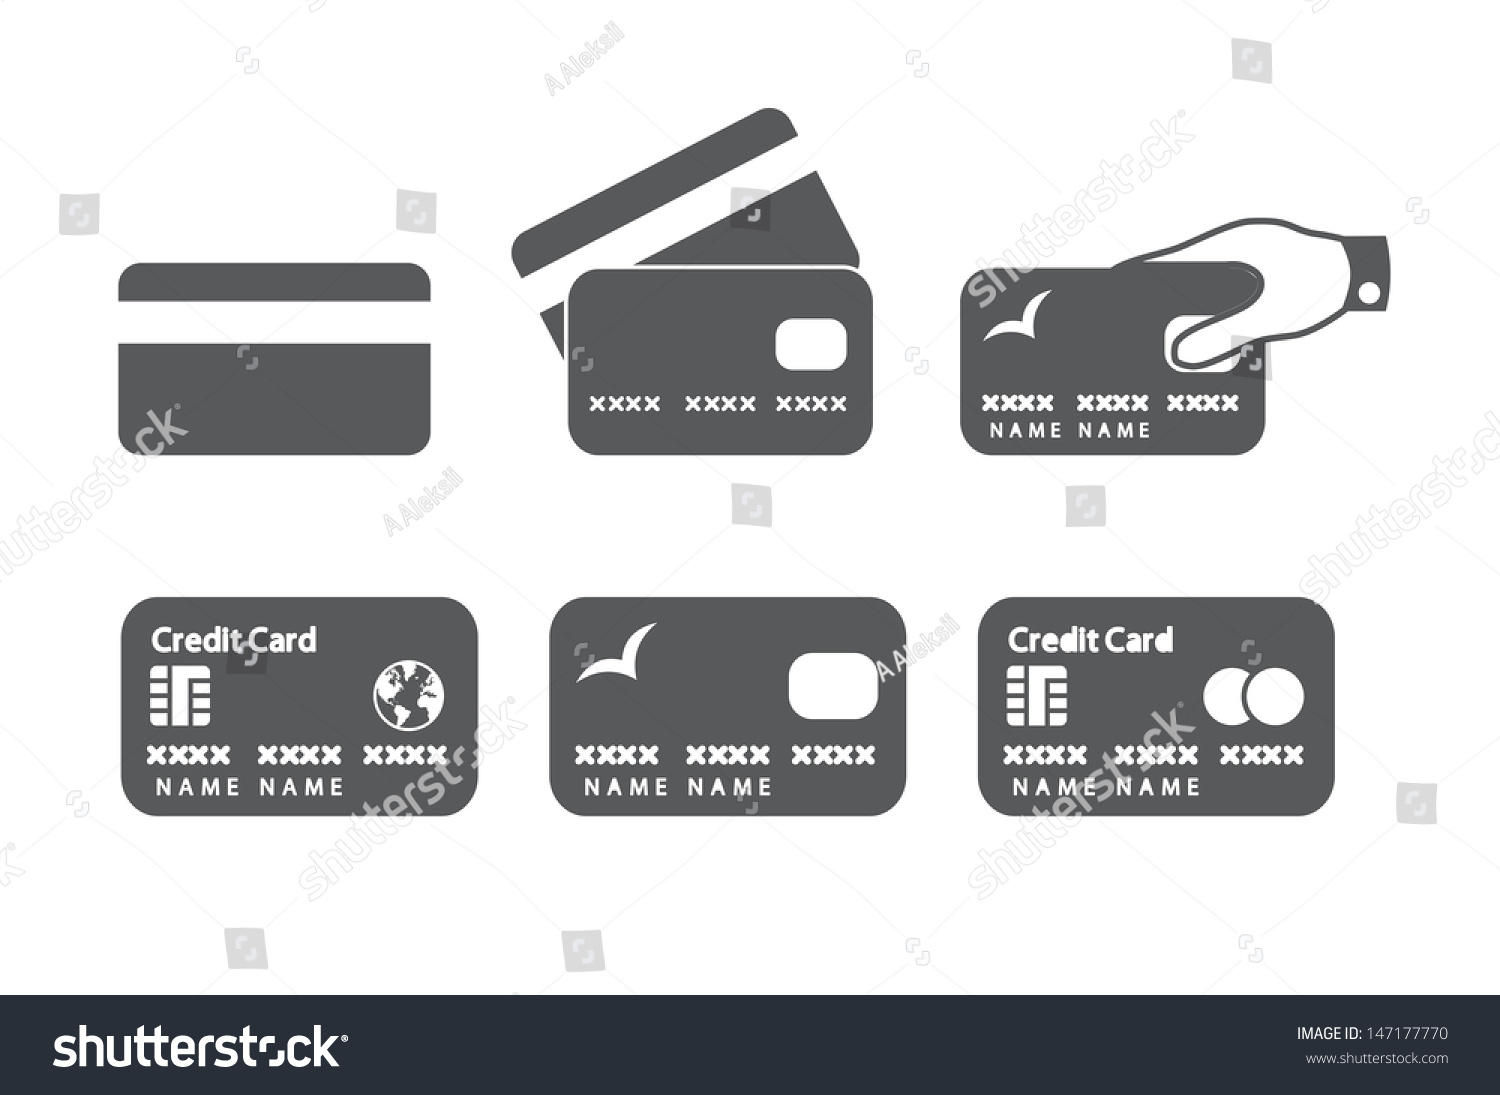 Credit Card Icons Vector Illustration Stock Vector 147177770 ...